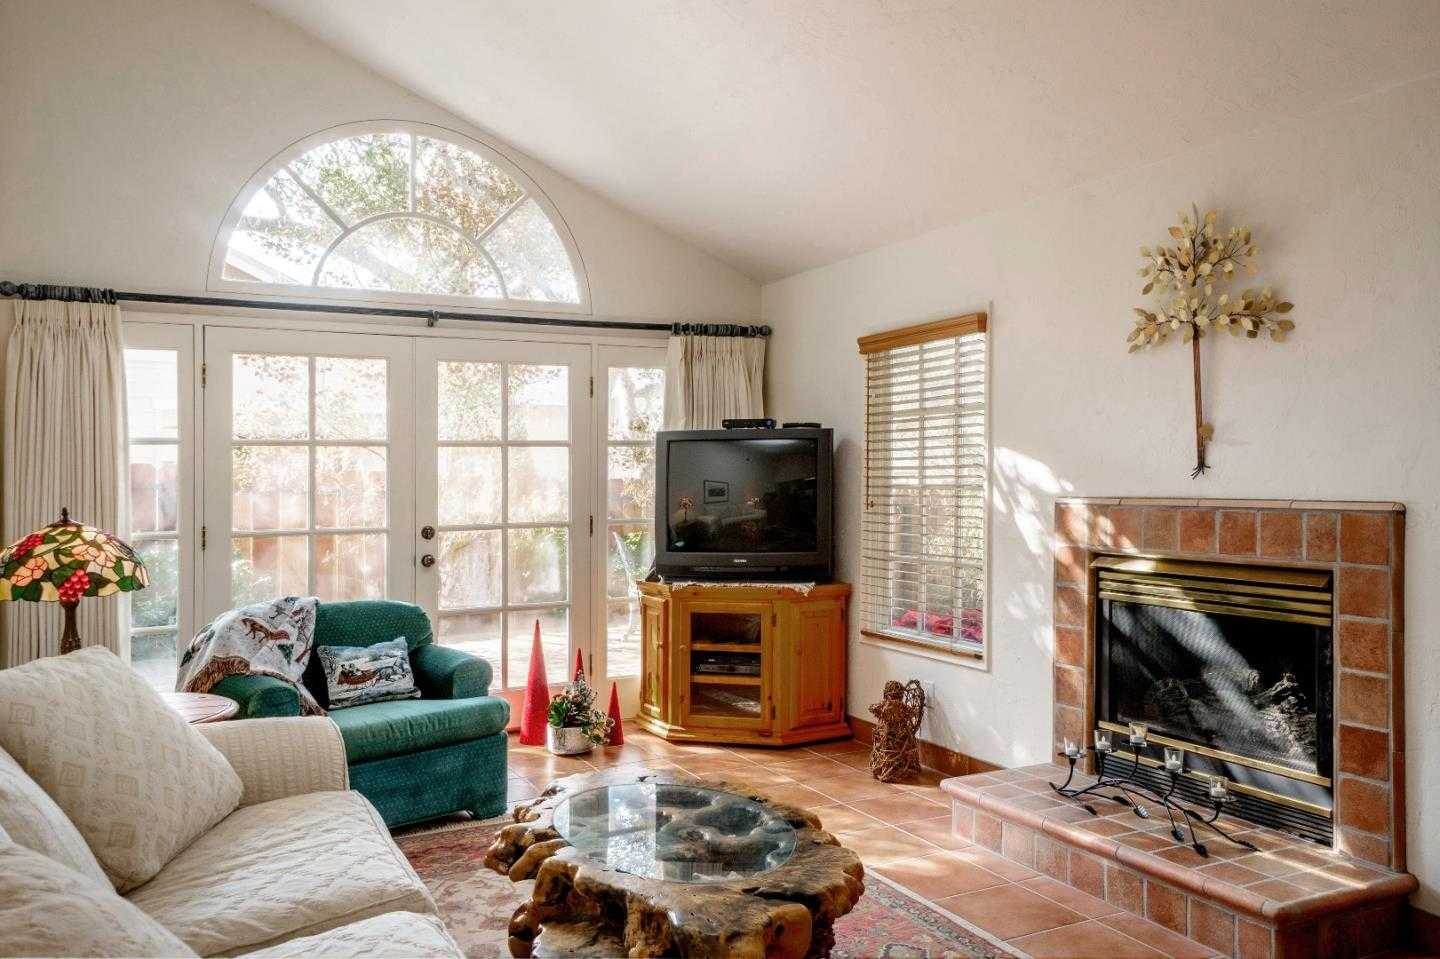 $973,000 - 2Br/2Ba -  for Sale in Pacific Grove